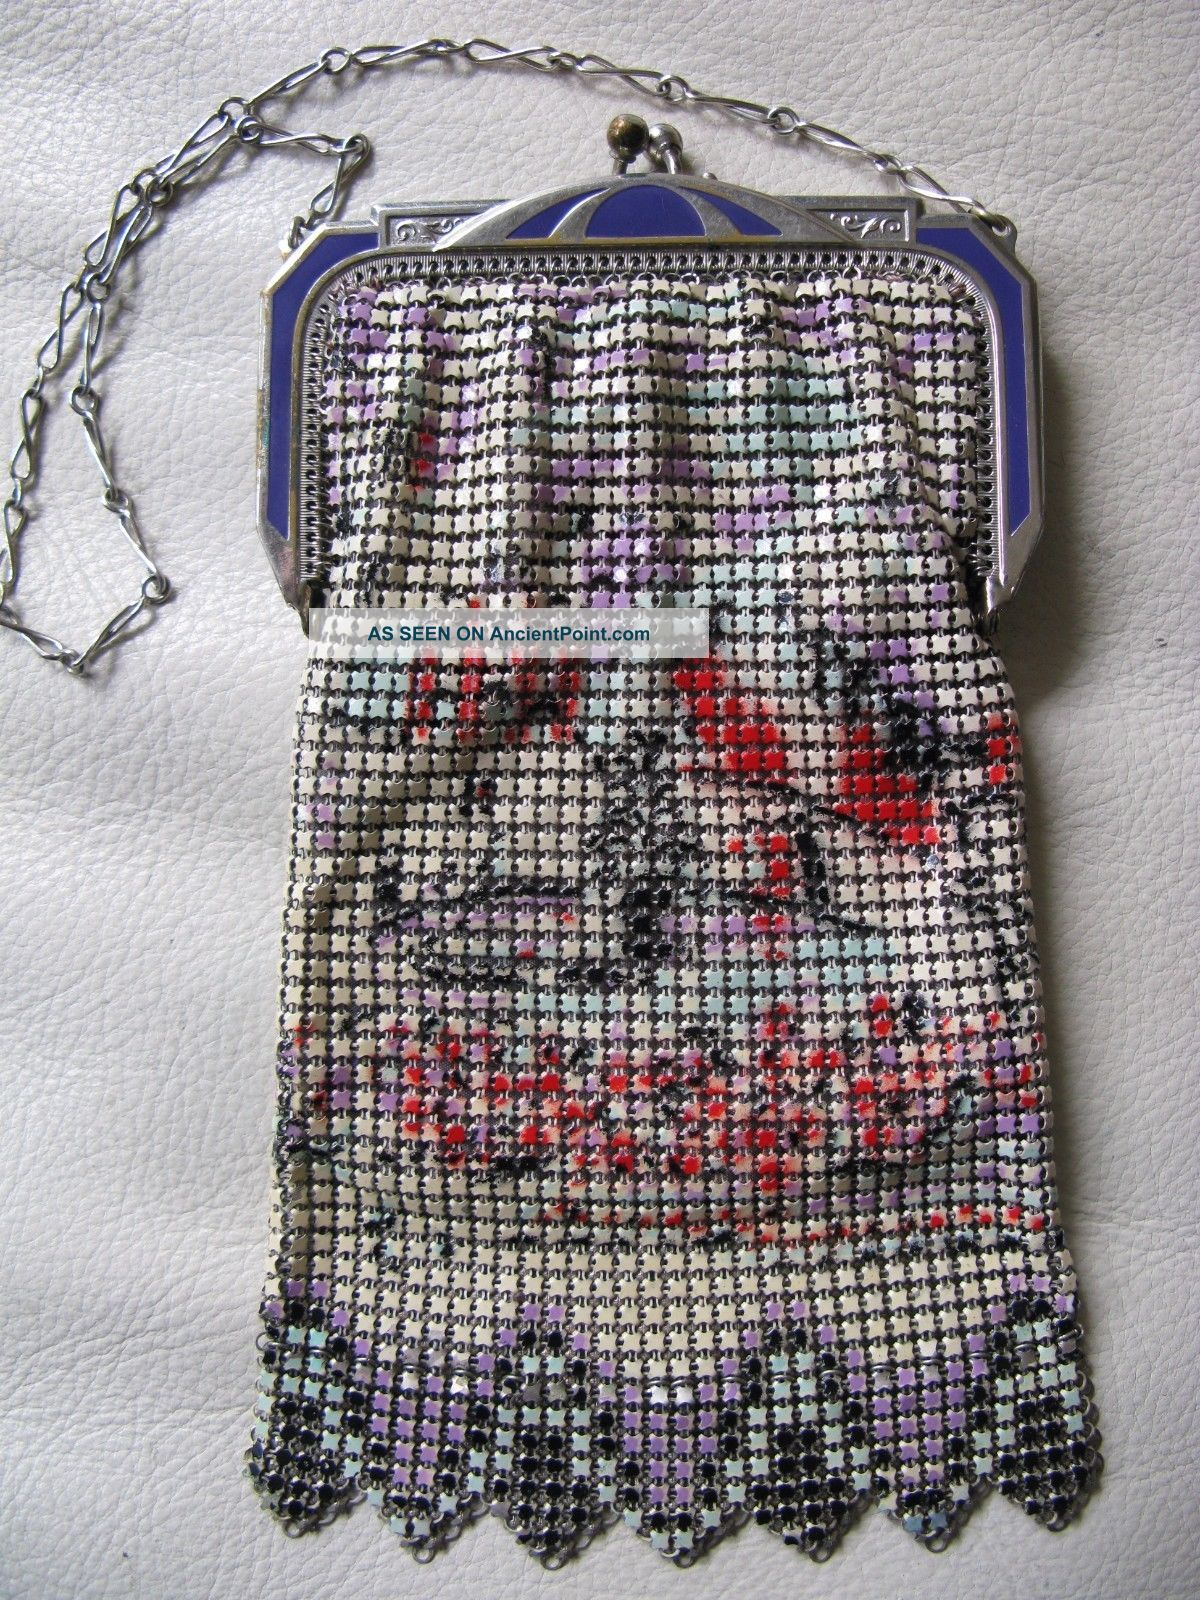 Antique Art Nouveau Deco Purple Enamel Frame Red Cream Chain Mail Mesh Purse W&d Art Deco photo